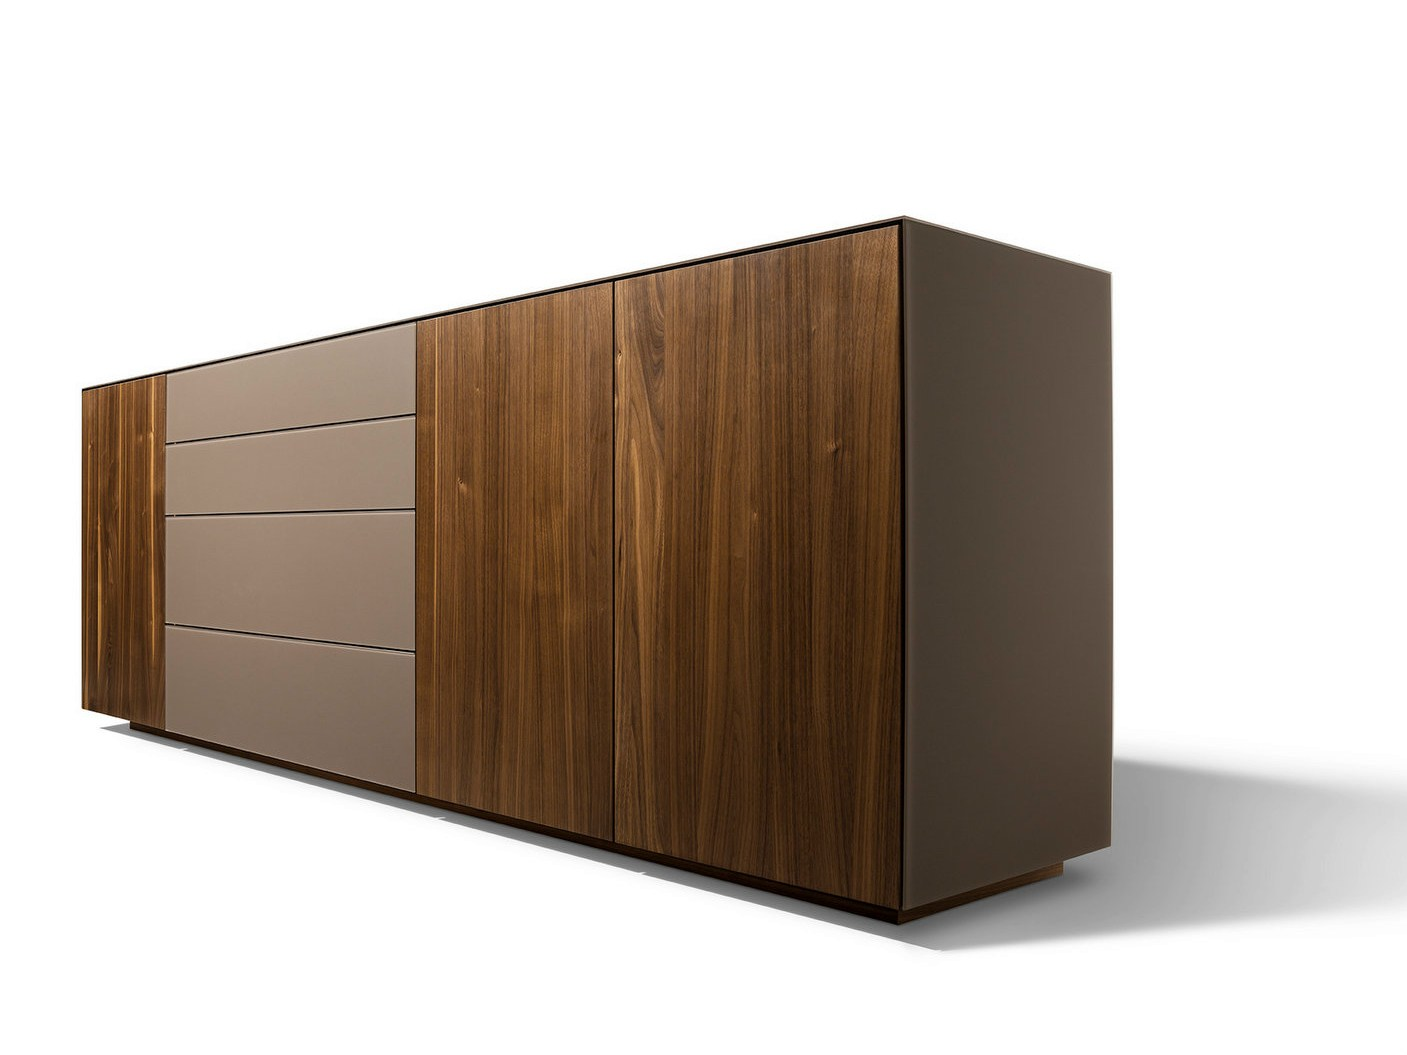 cubus pure sideboard mit schubladen by team 7 nat rlich wohnen design sebastian desch. Black Bedroom Furniture Sets. Home Design Ideas